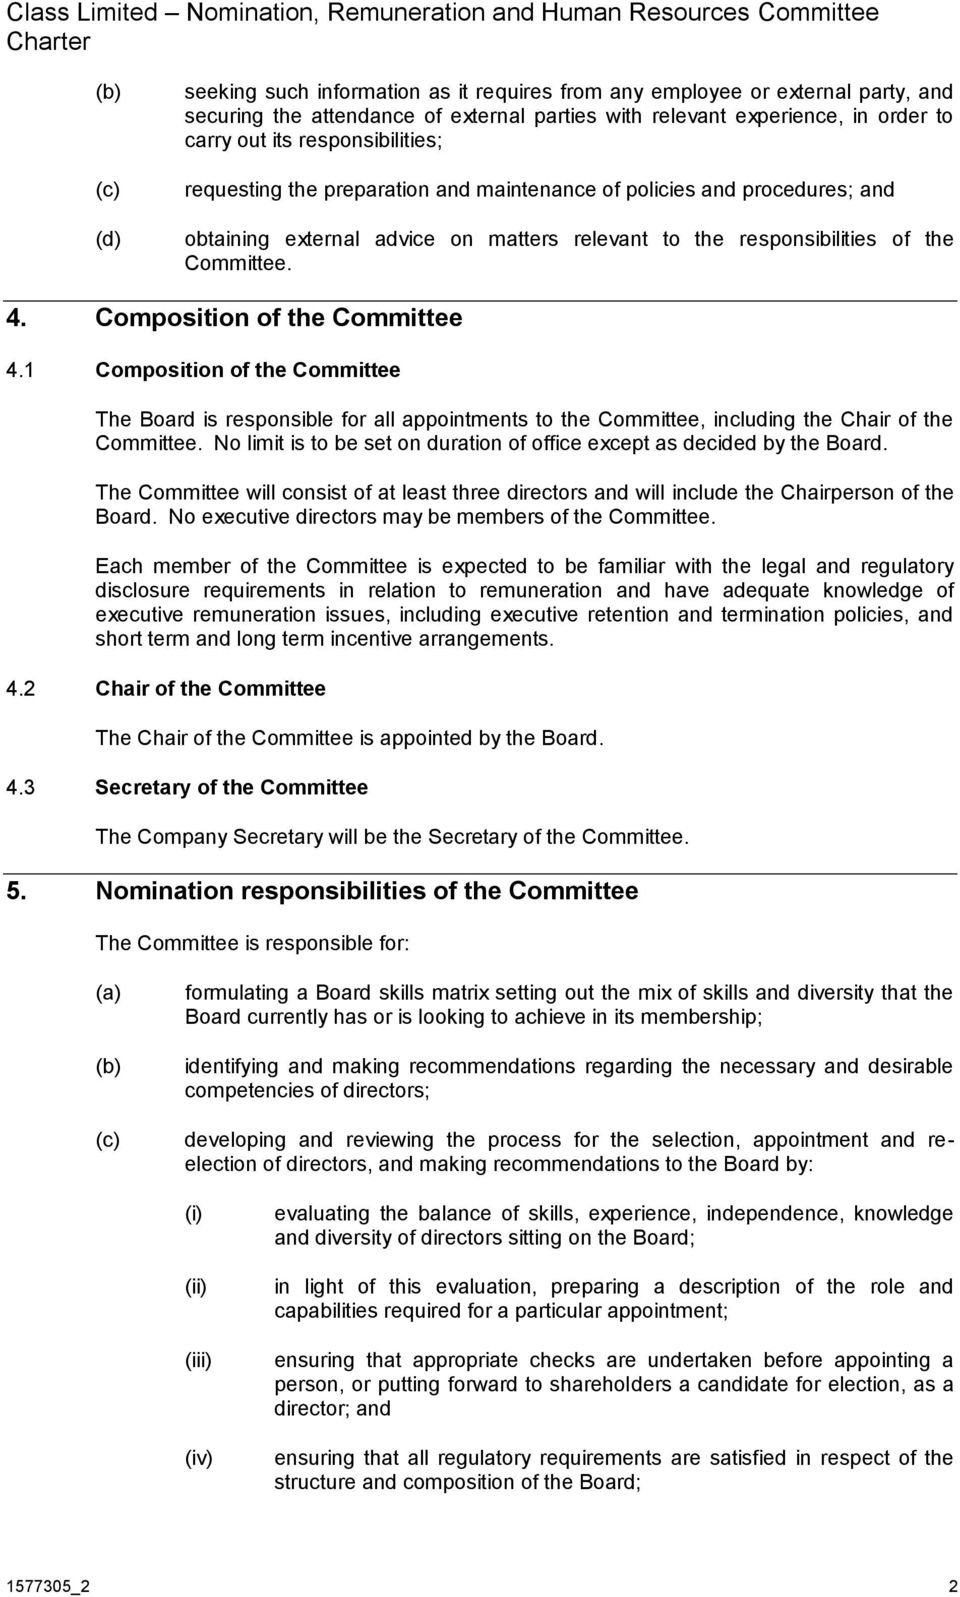 1 Composition of the Committee The Board is responsible for all appointments to the Committee, including the Chair of the Committee.